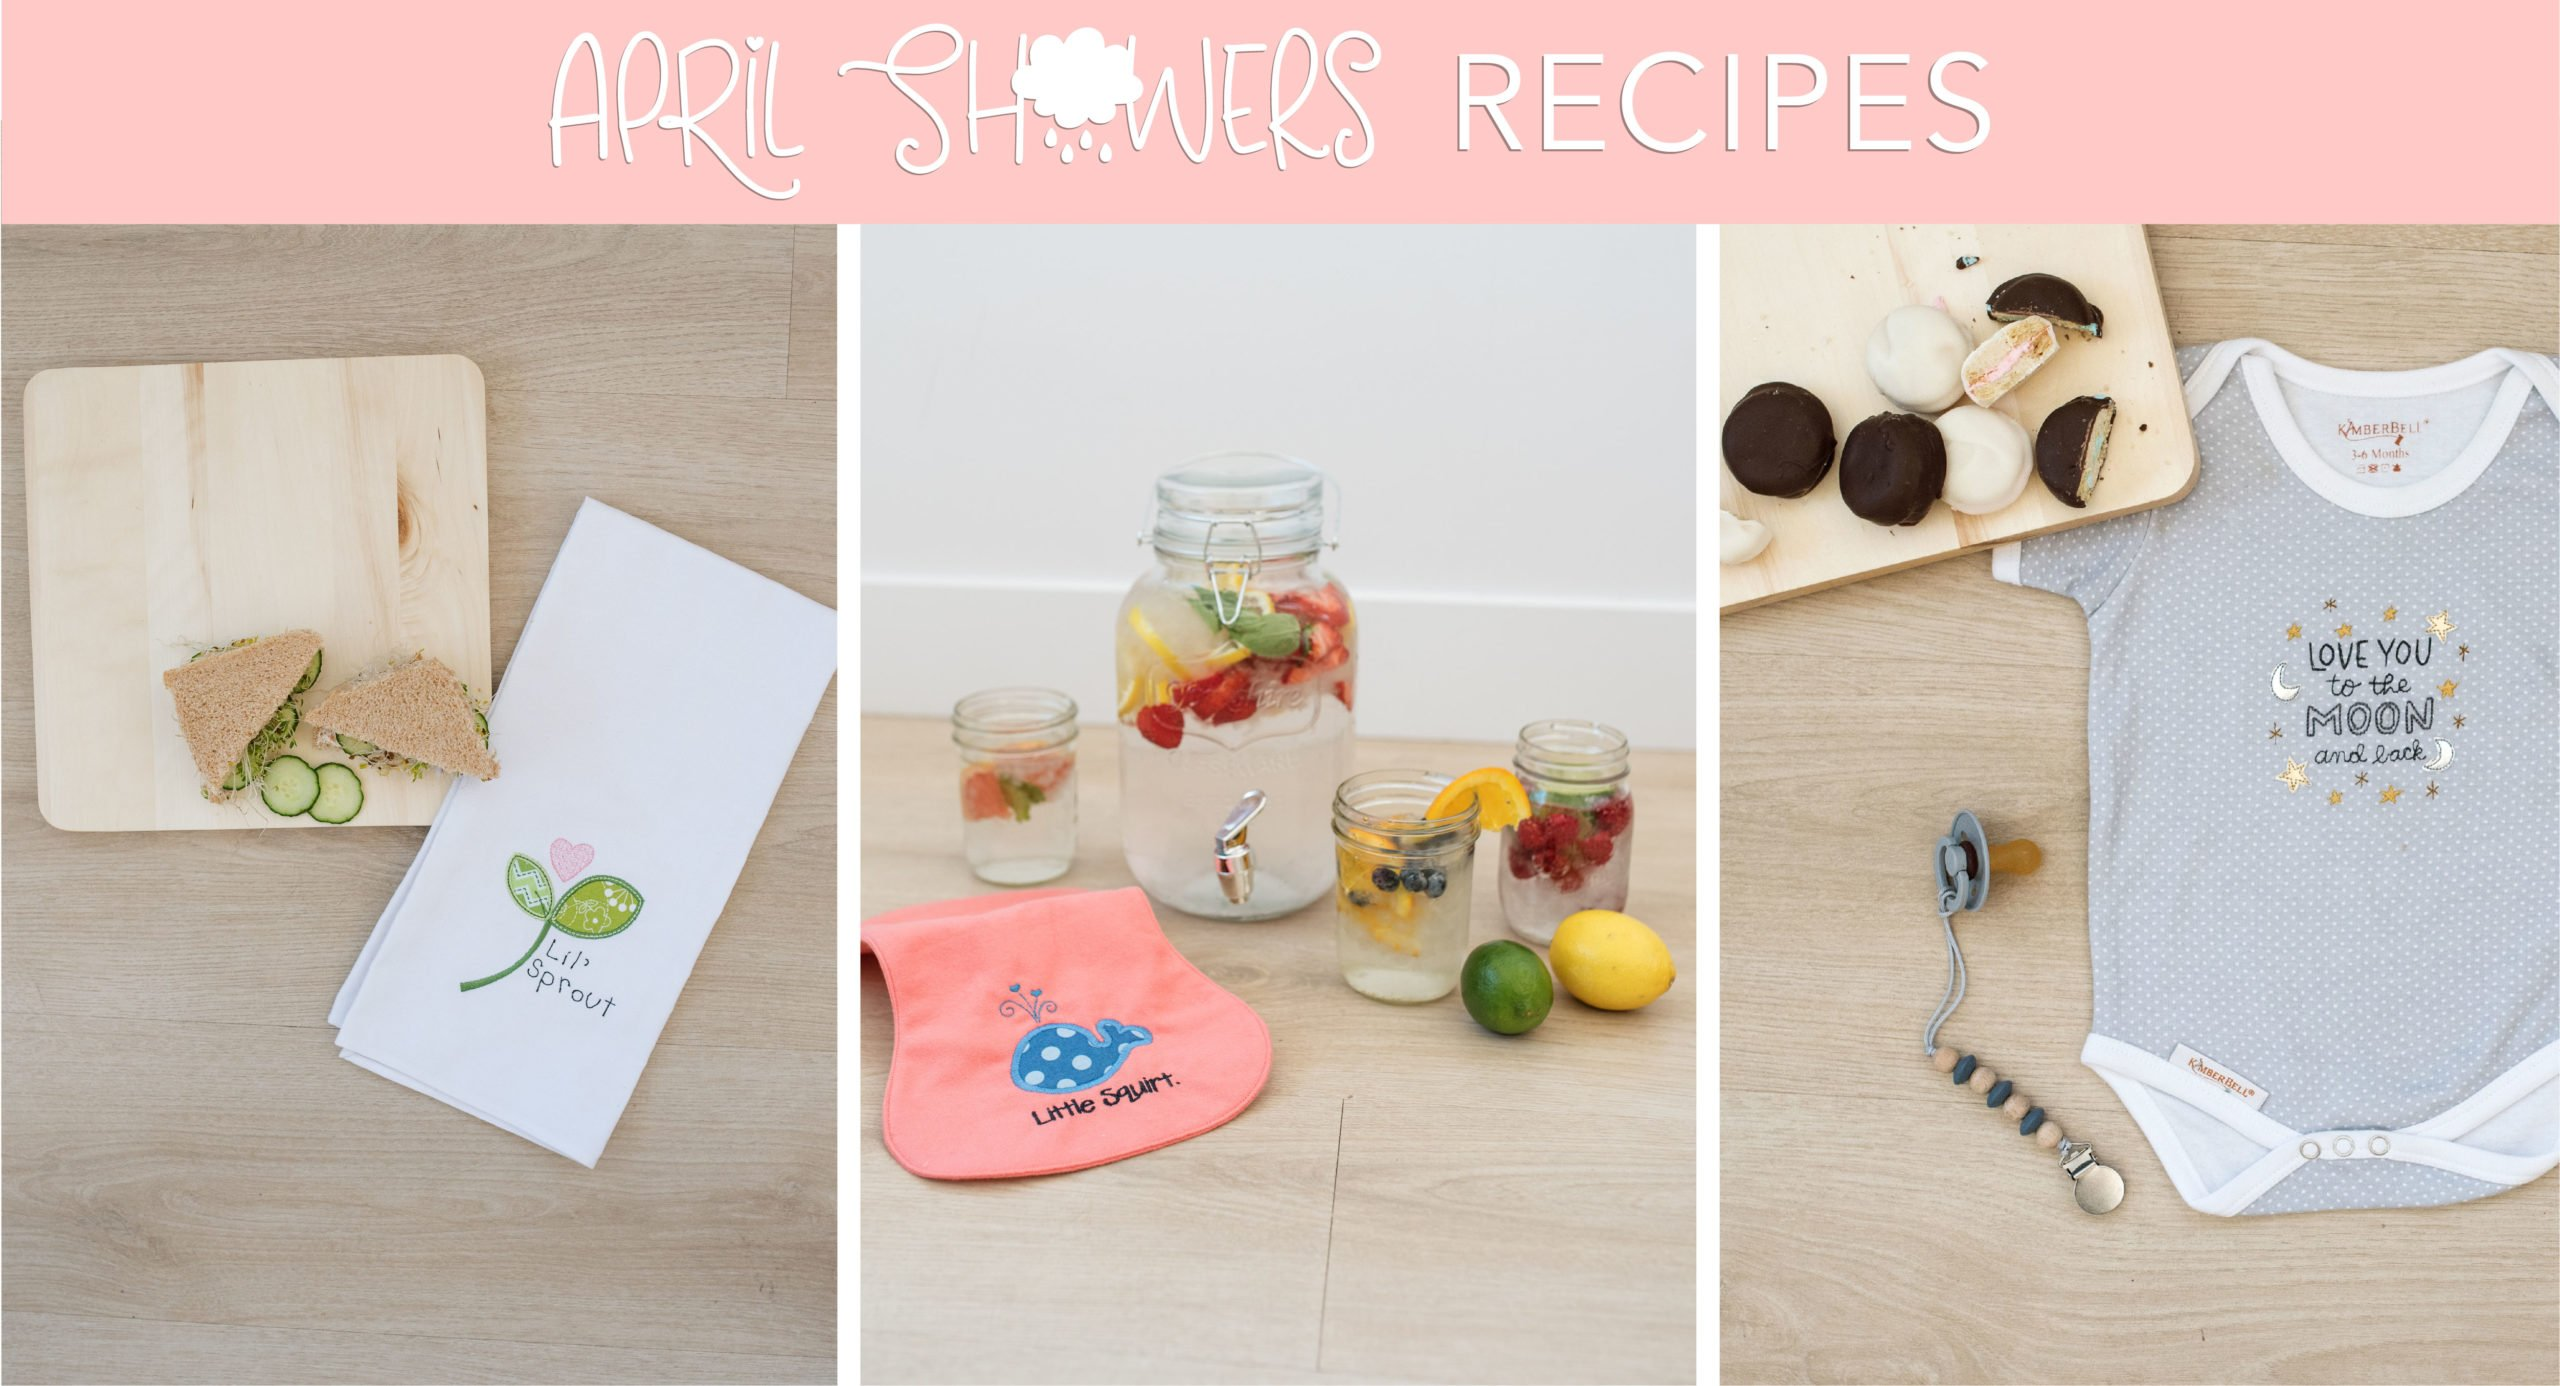 Baby shower food recipes inspired by Kimberbell designs for machine embroidery